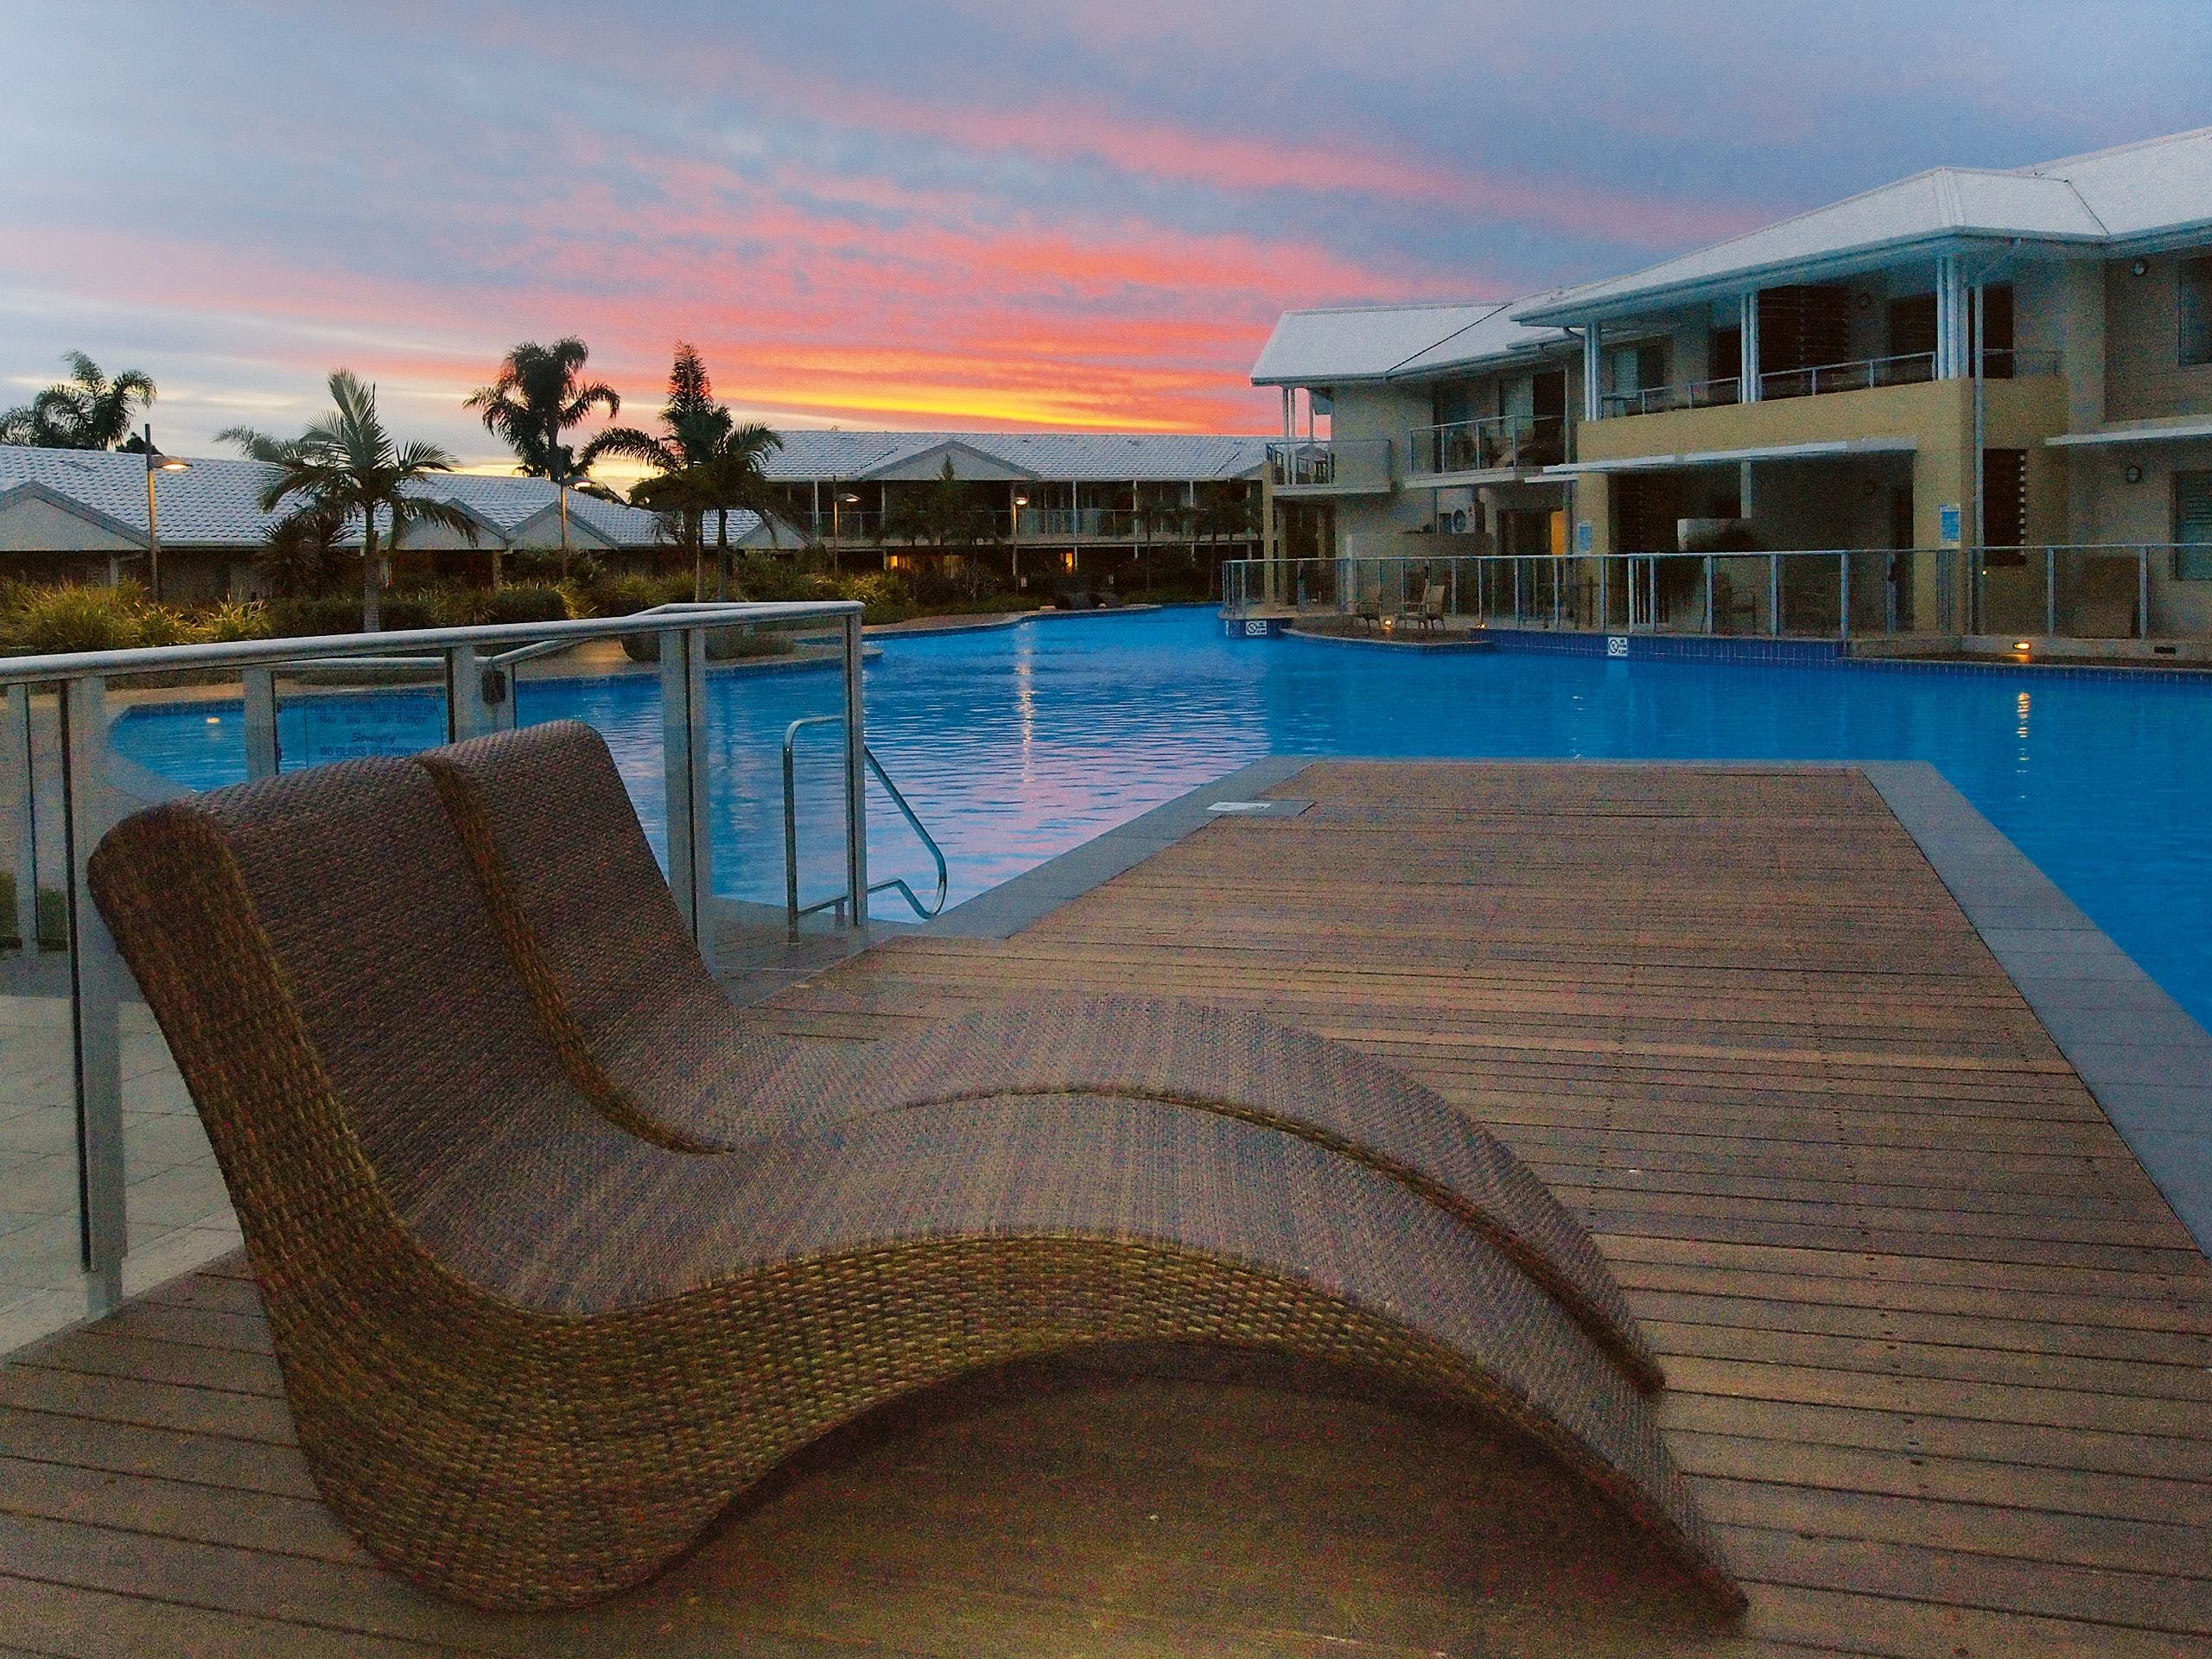 Oaks Port Stephens Pacific Blue Resort - St Kilda Accommodation